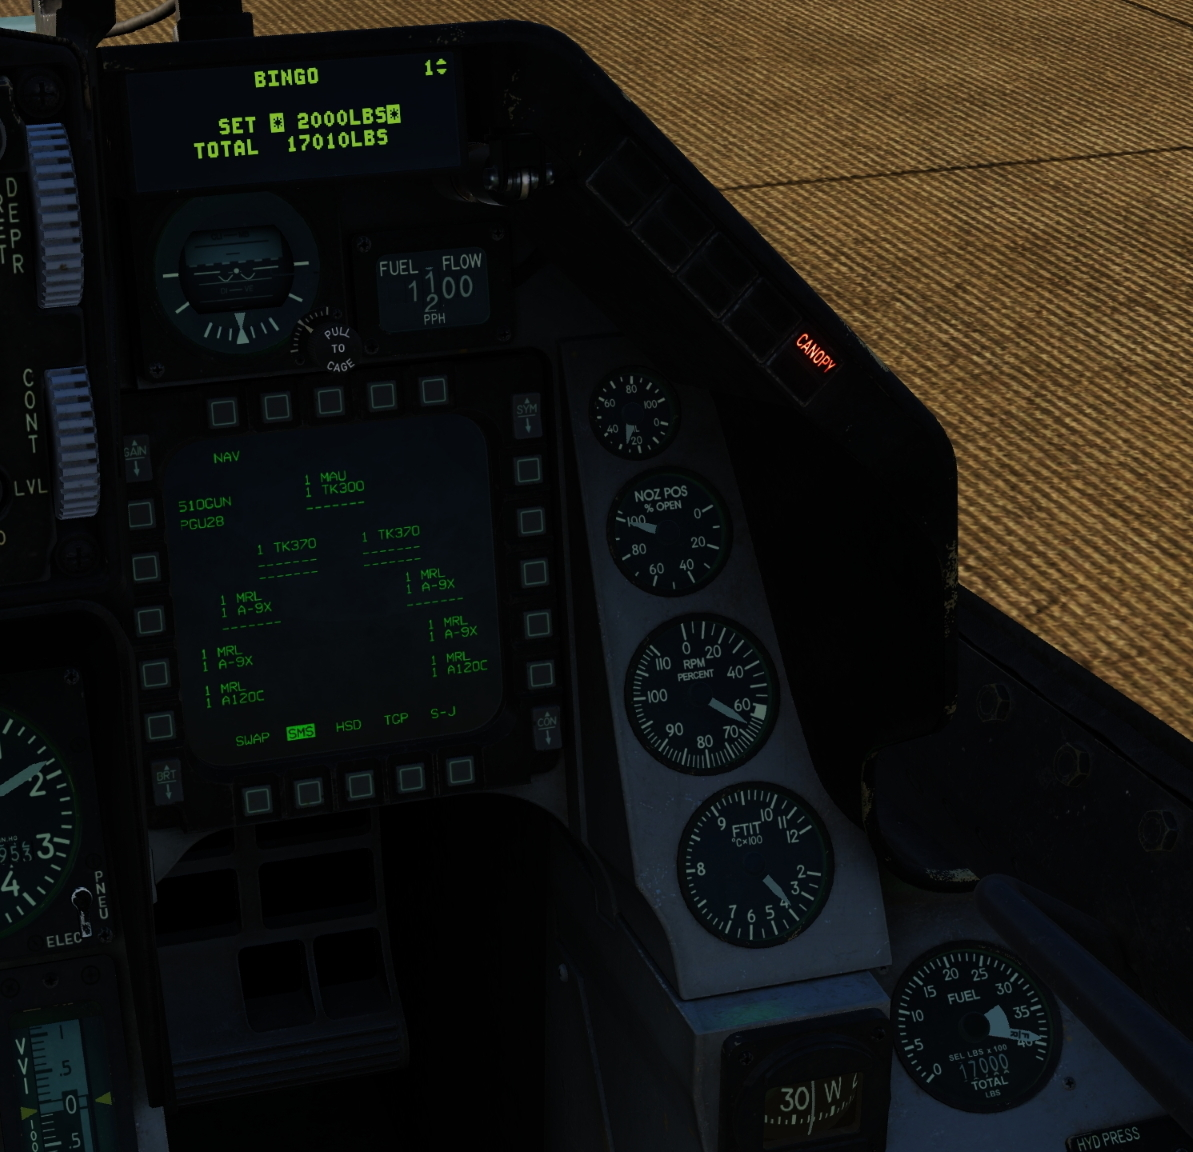 CFT_Mod_1.7 and 1.7.1 (stock lights)